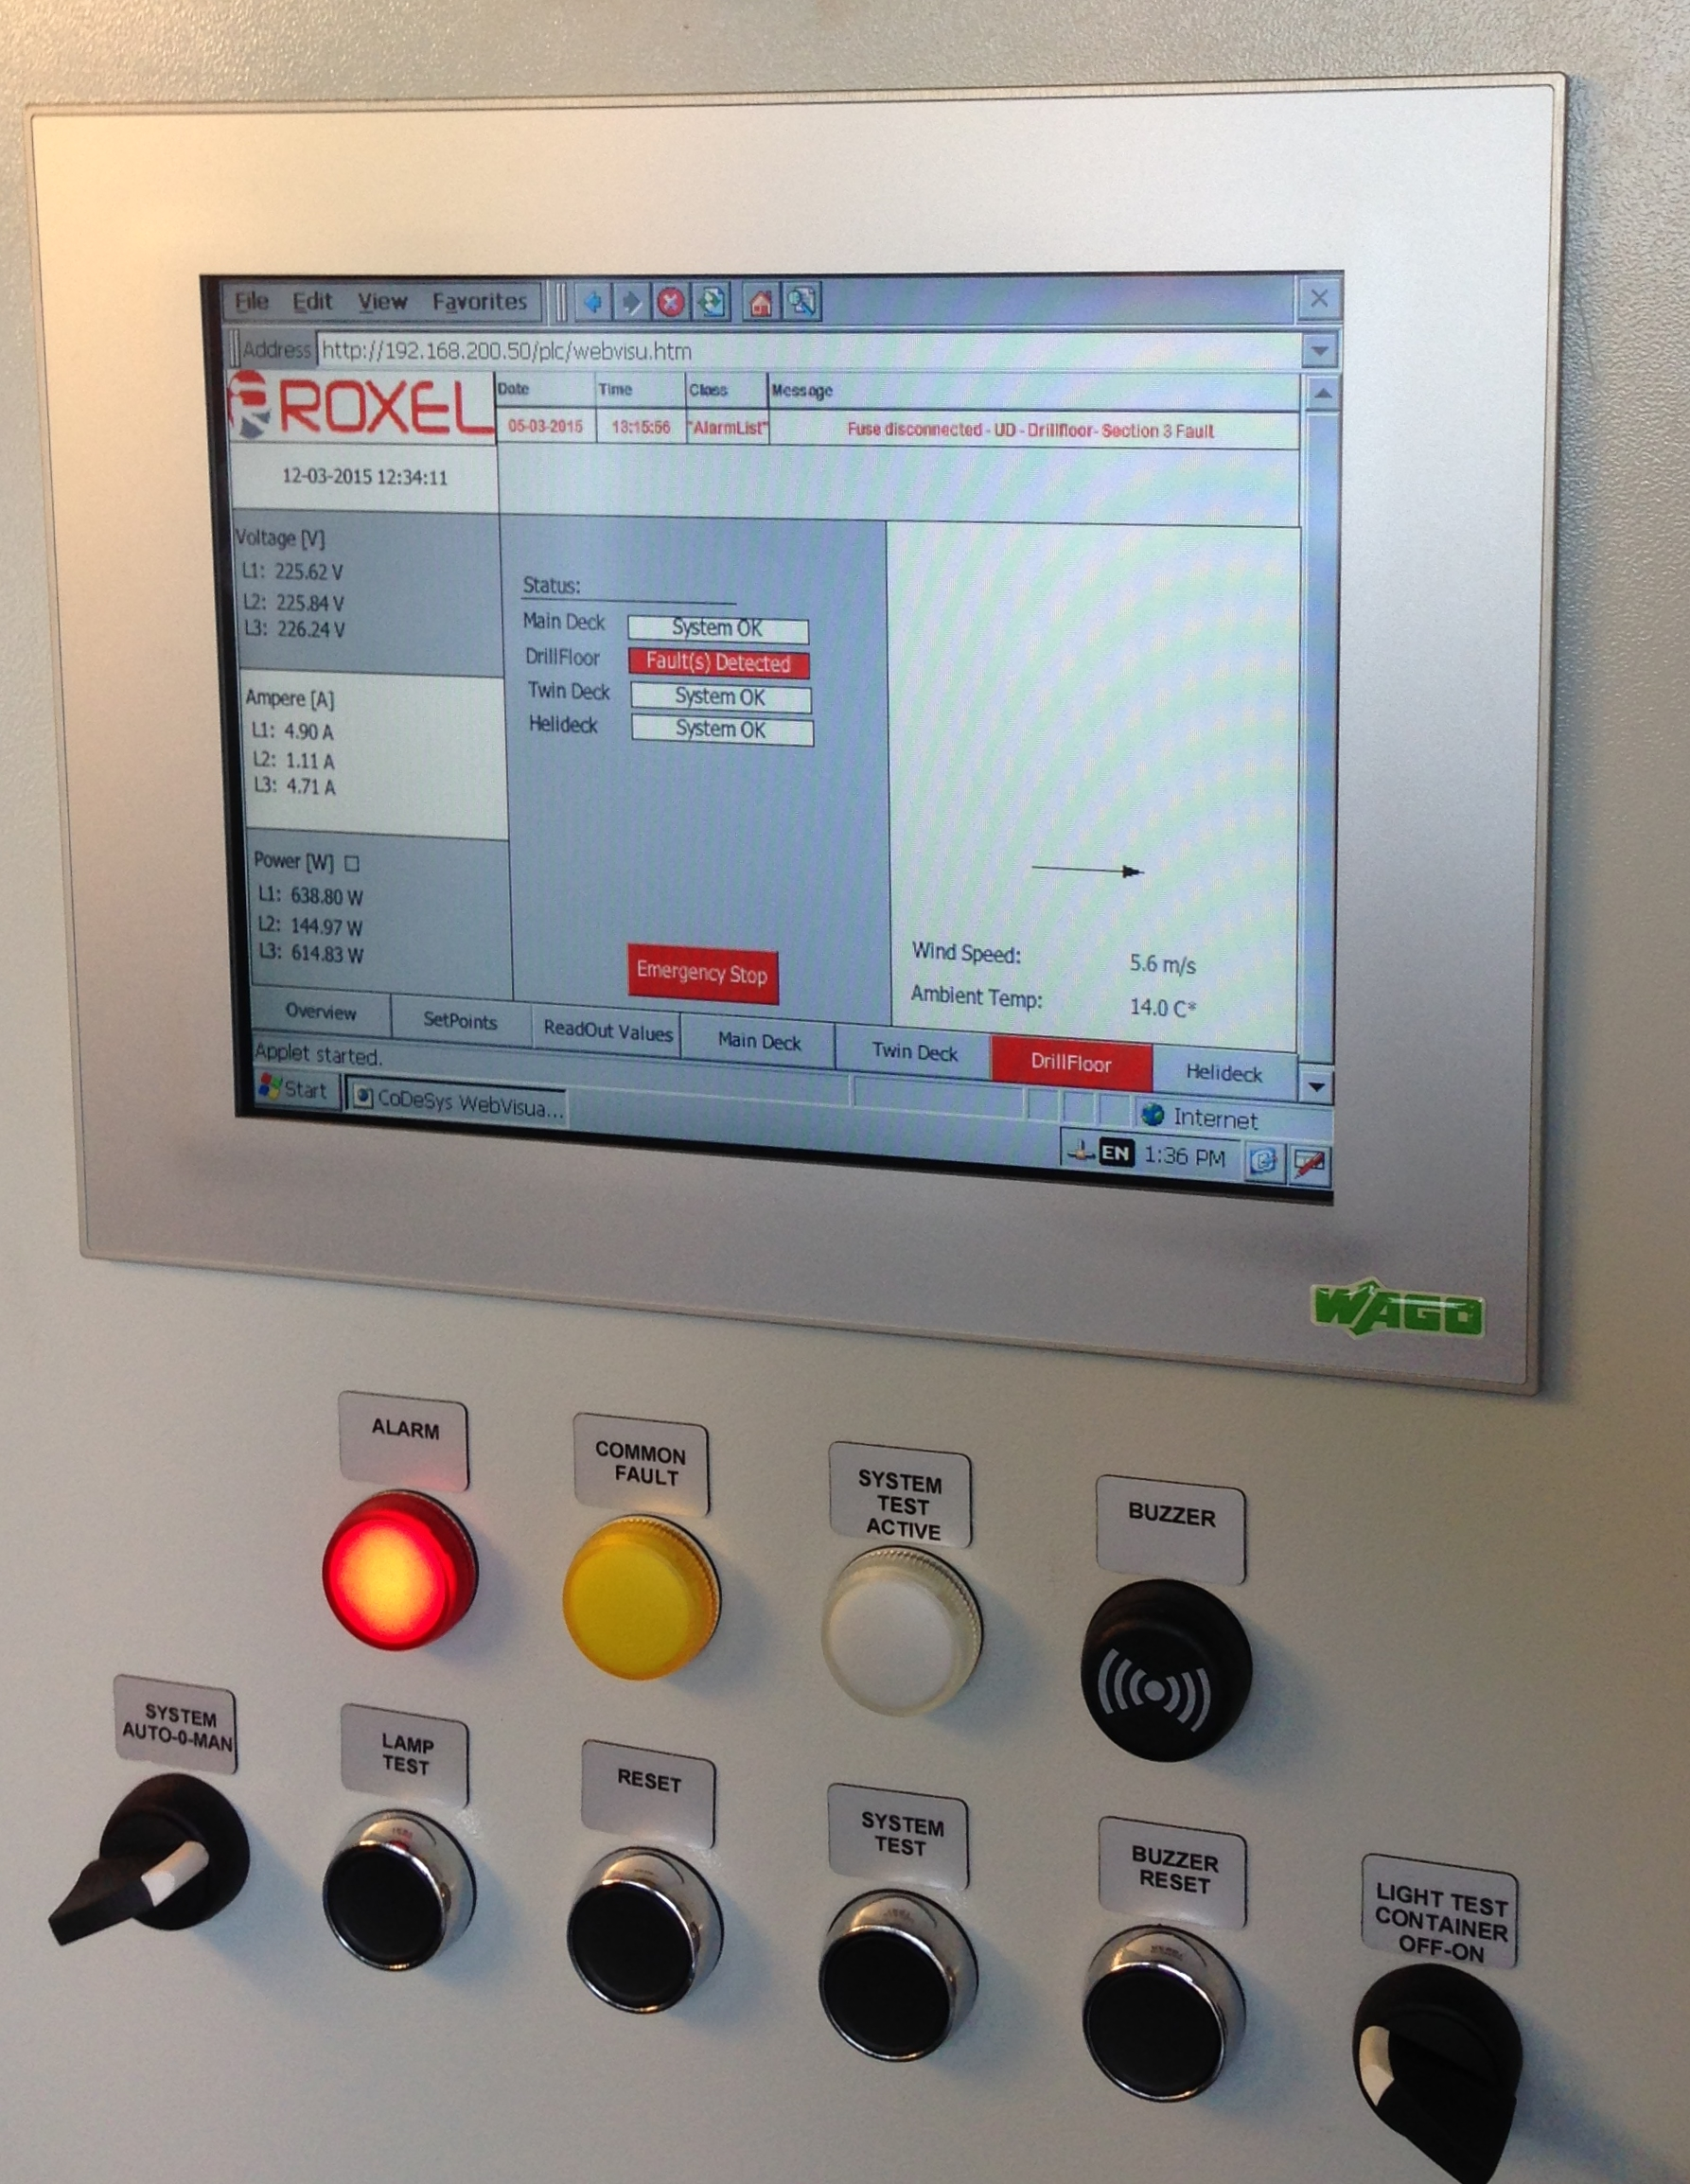 Roxel Control & Monitoring System